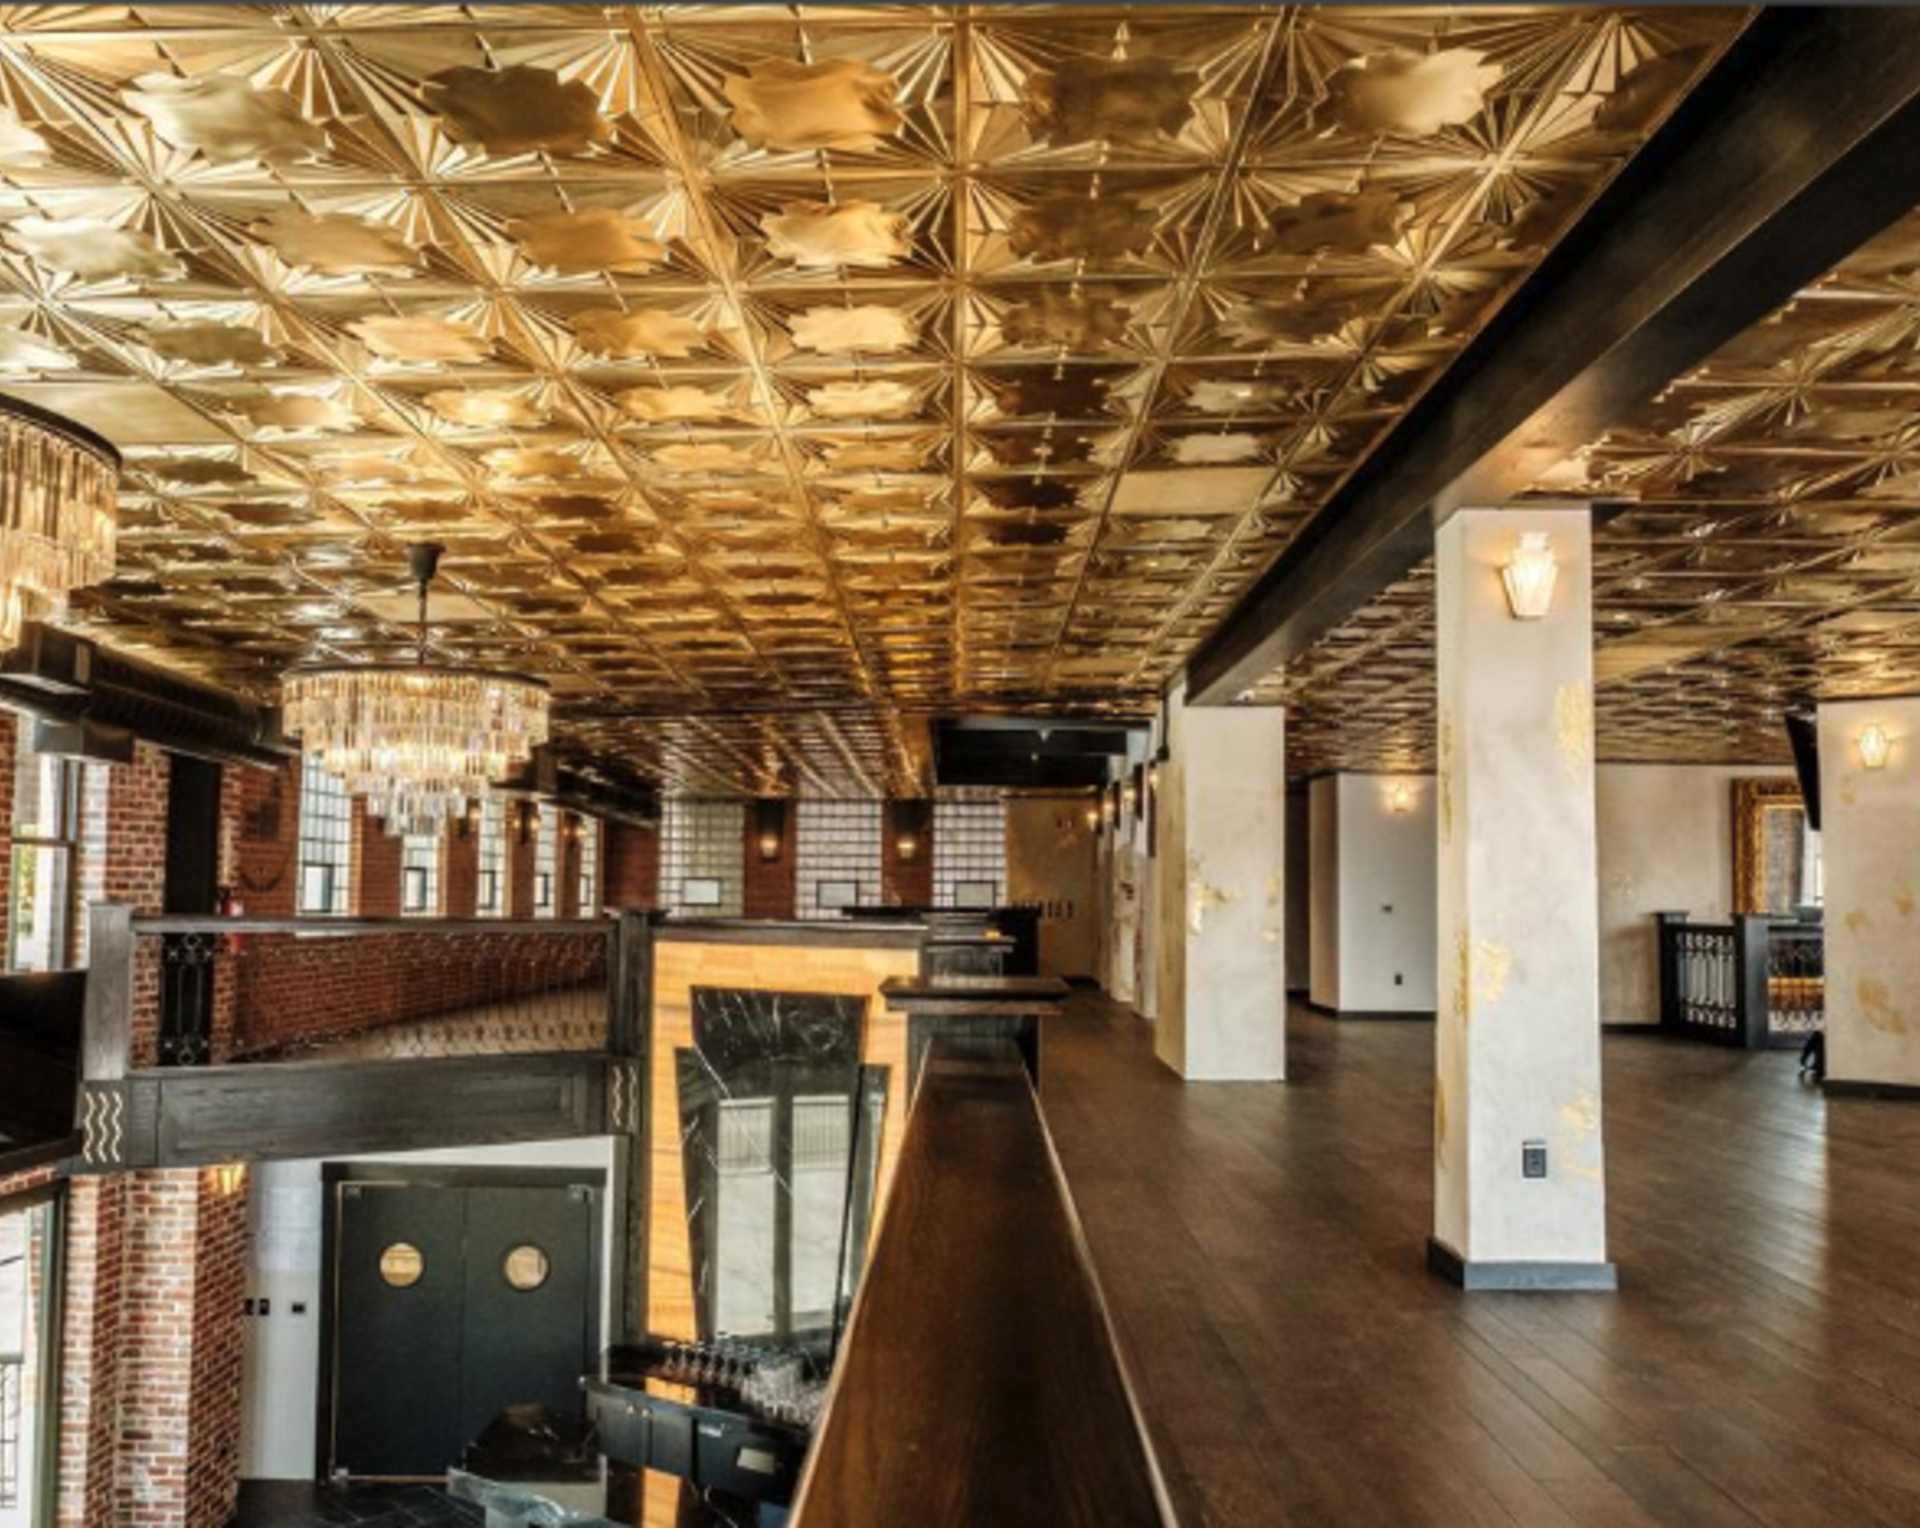 115-Year-Old Building, Now an Event Space in Denver